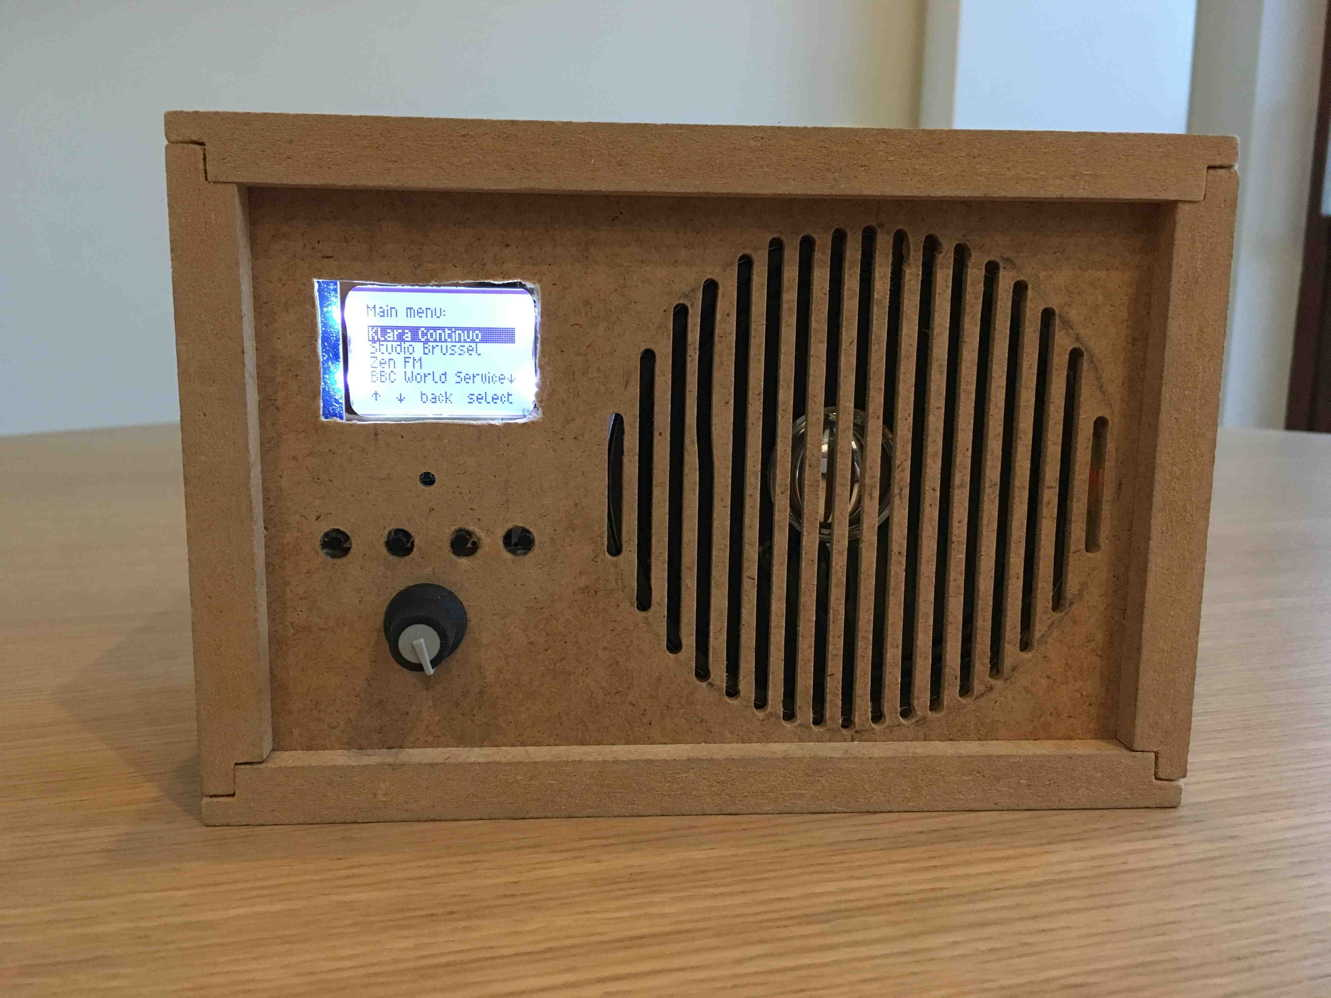 internetradio using recycled enclosure